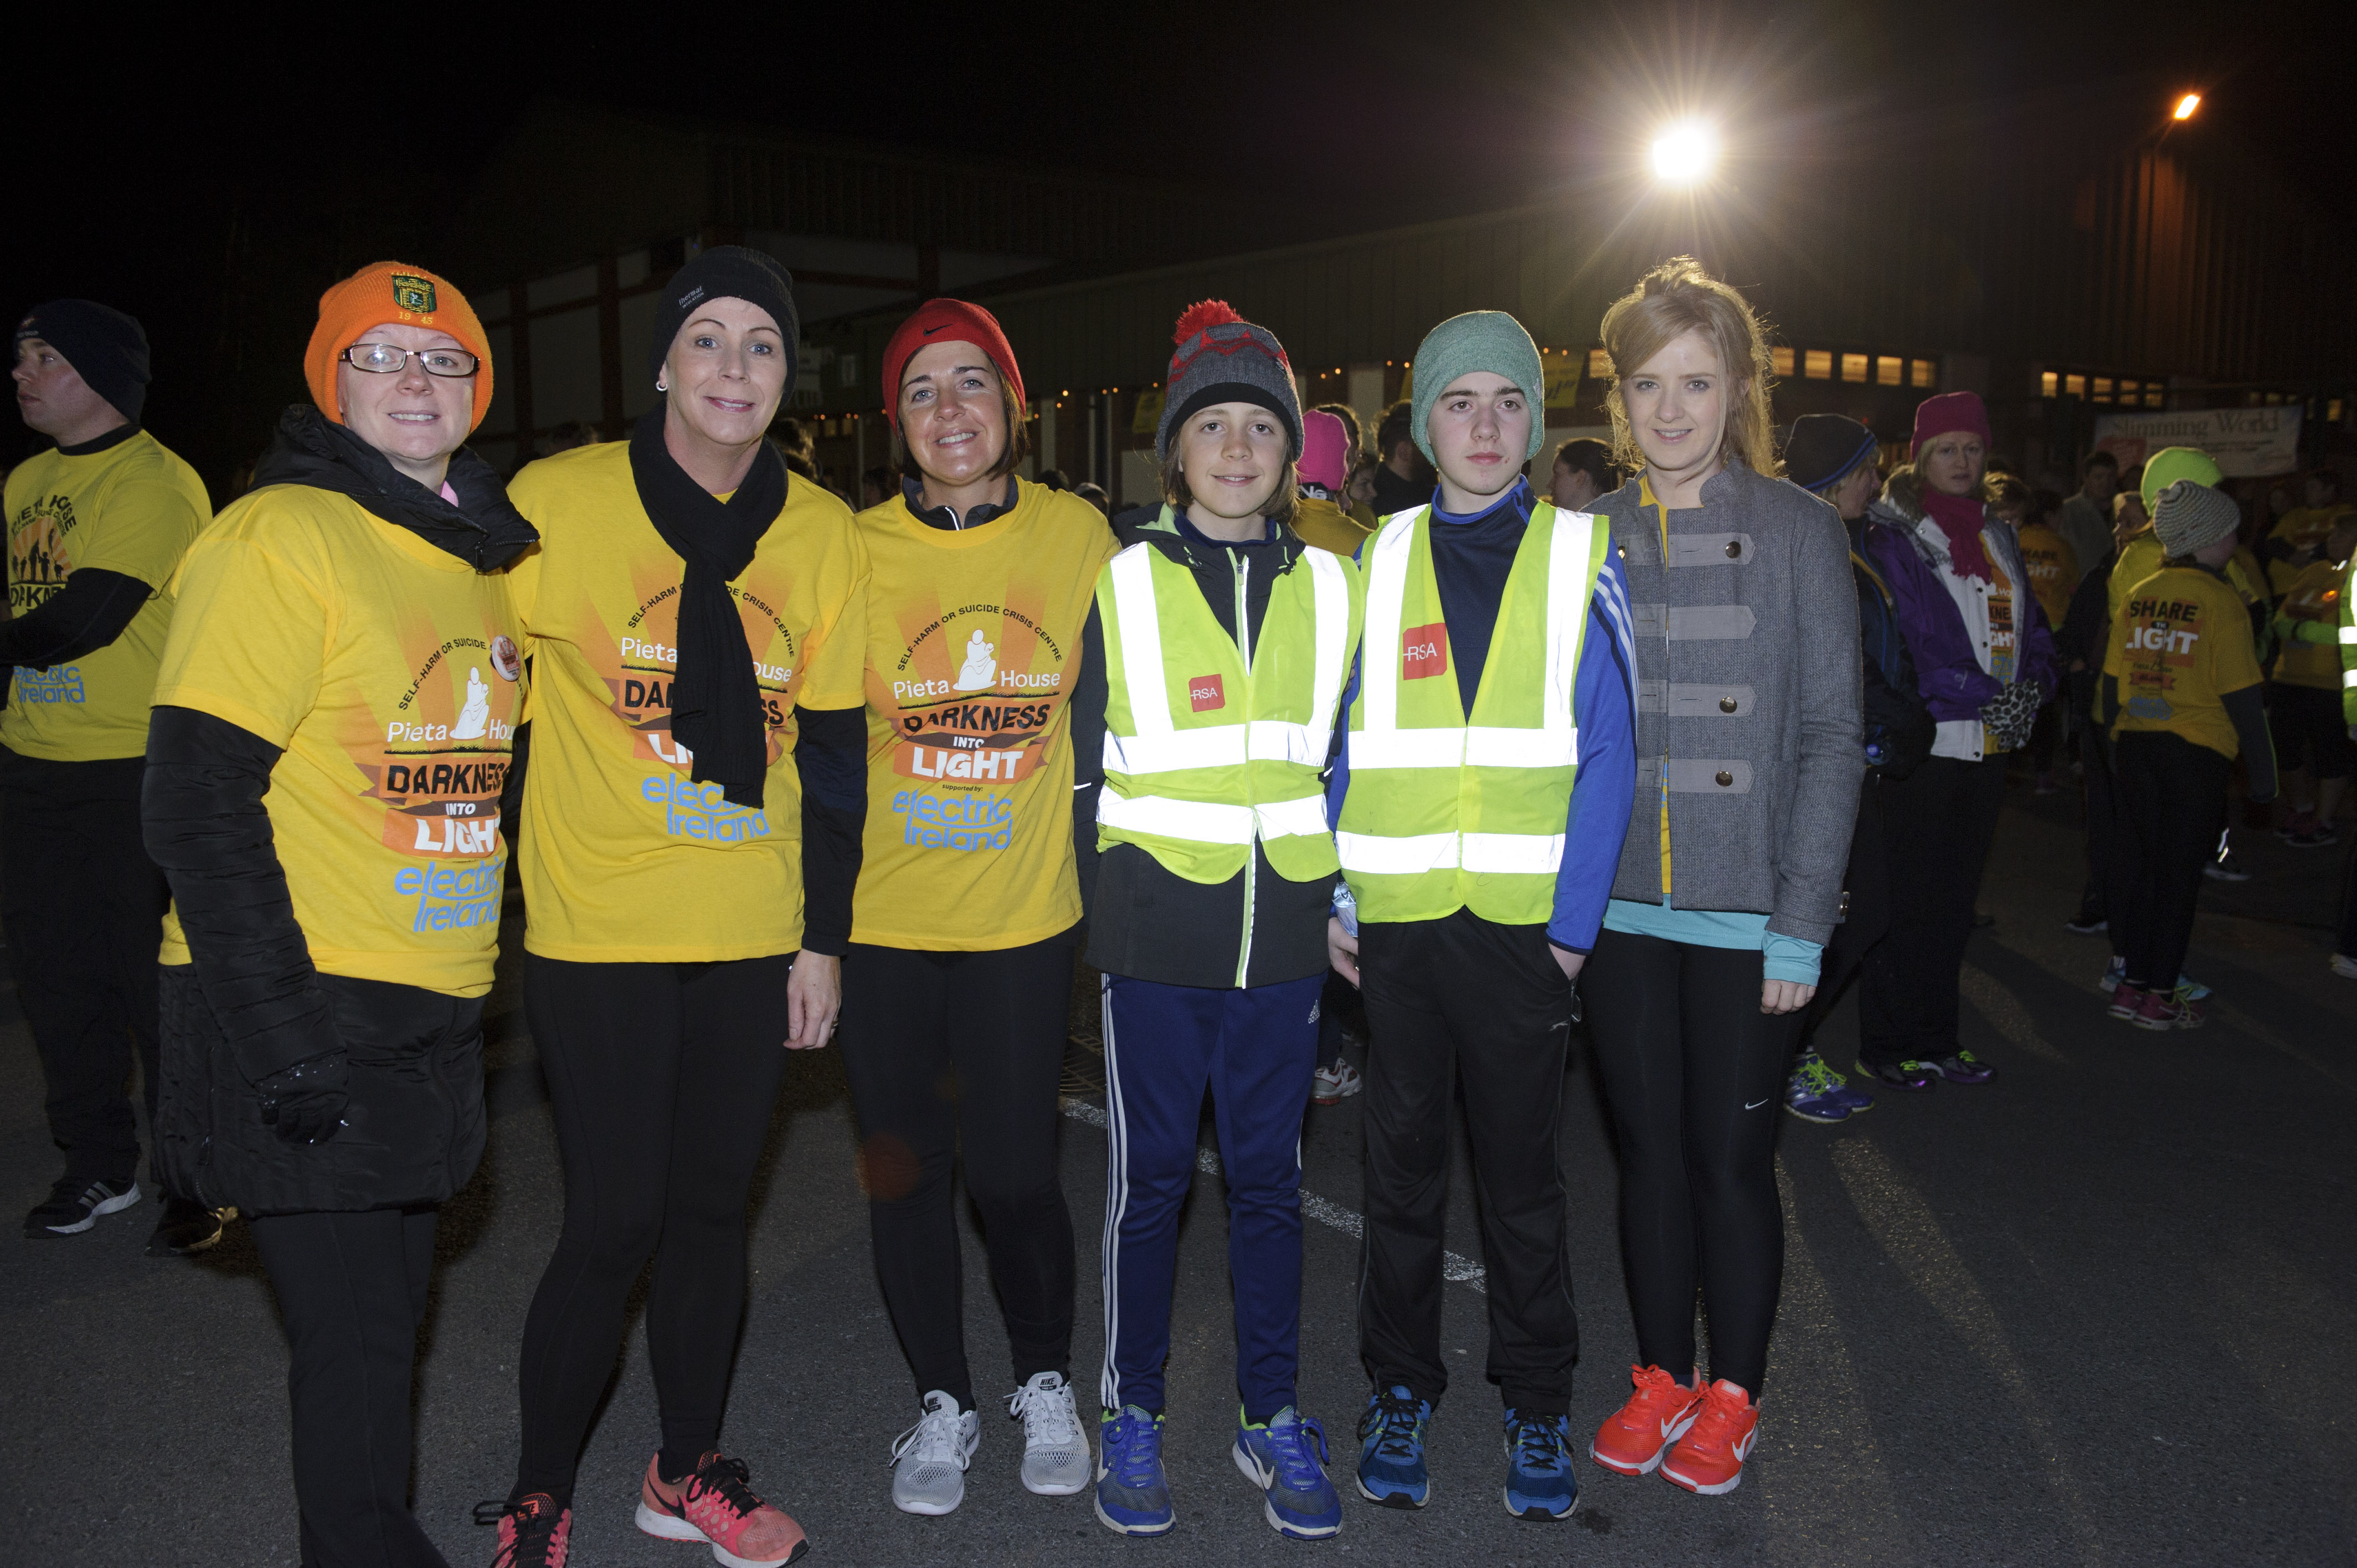 Pictured at the Monaghan Darkness Into Light were (L-R) Bernadine Gormley, Patrica Gormley, Laura Brady, Louise Brady, Reece Brady and Sharon Oliver. ©Rory Geary/The Northern Standard